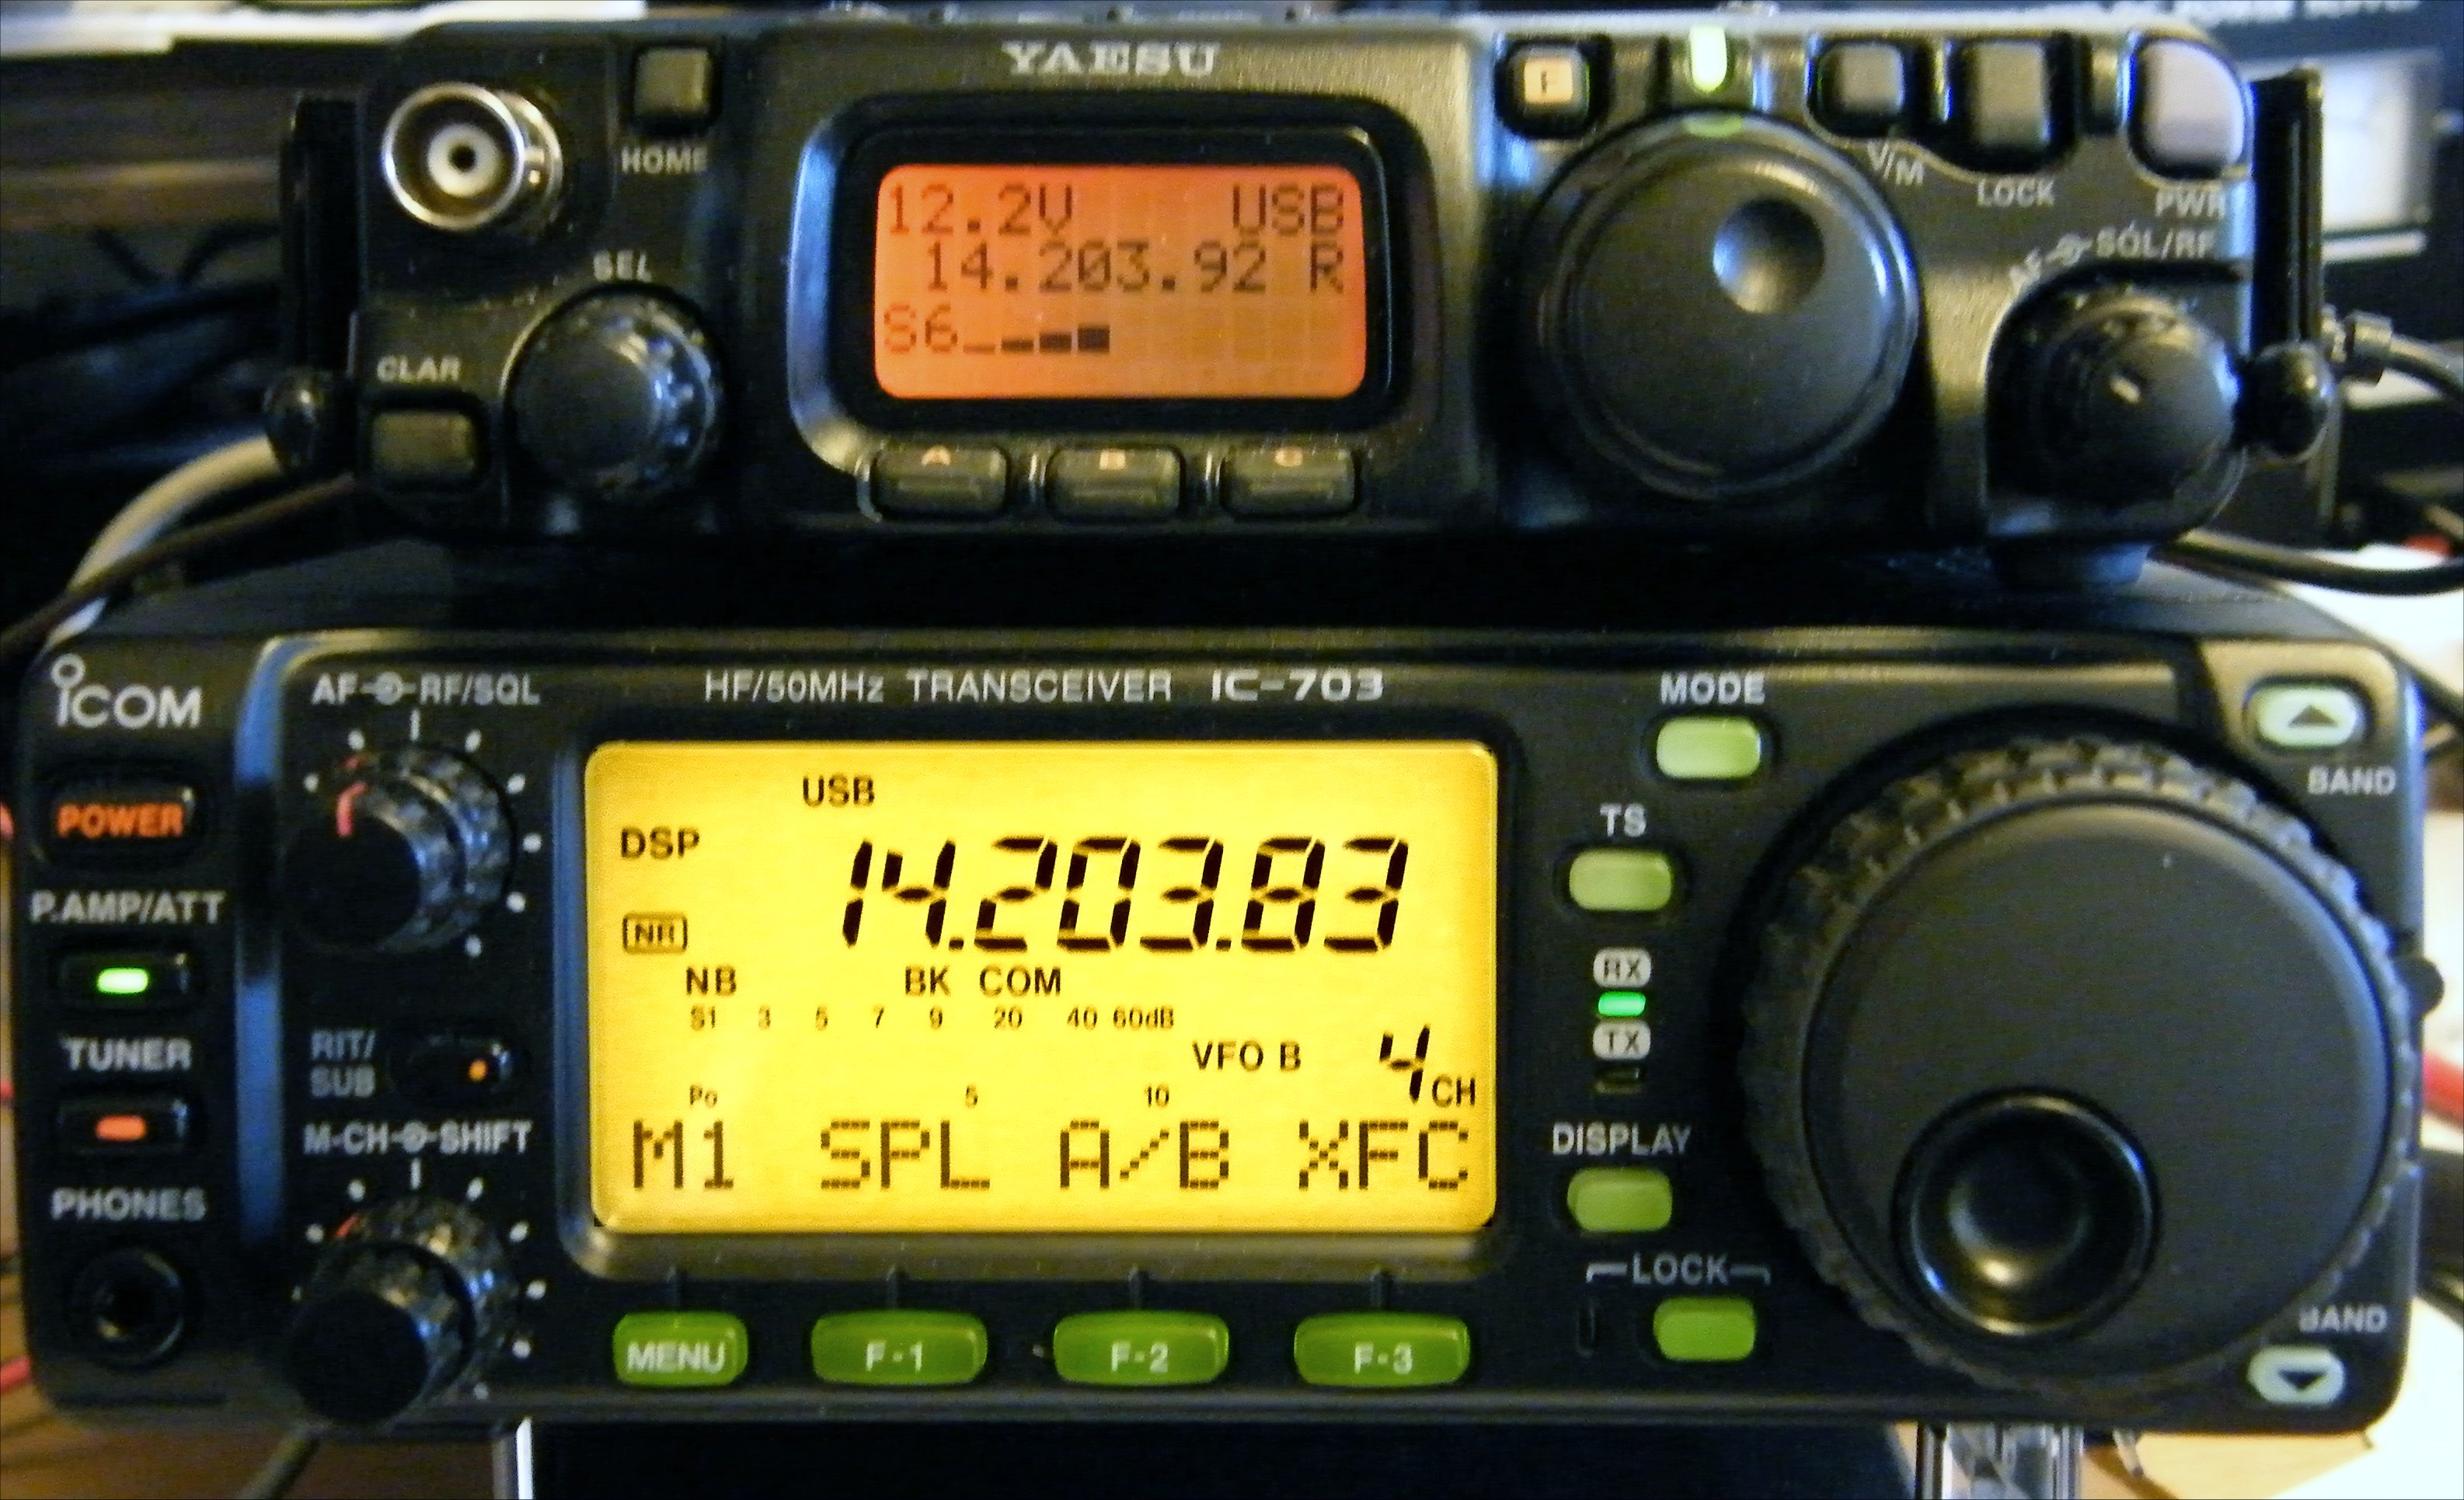 Yaesu FT-817ND For Sale